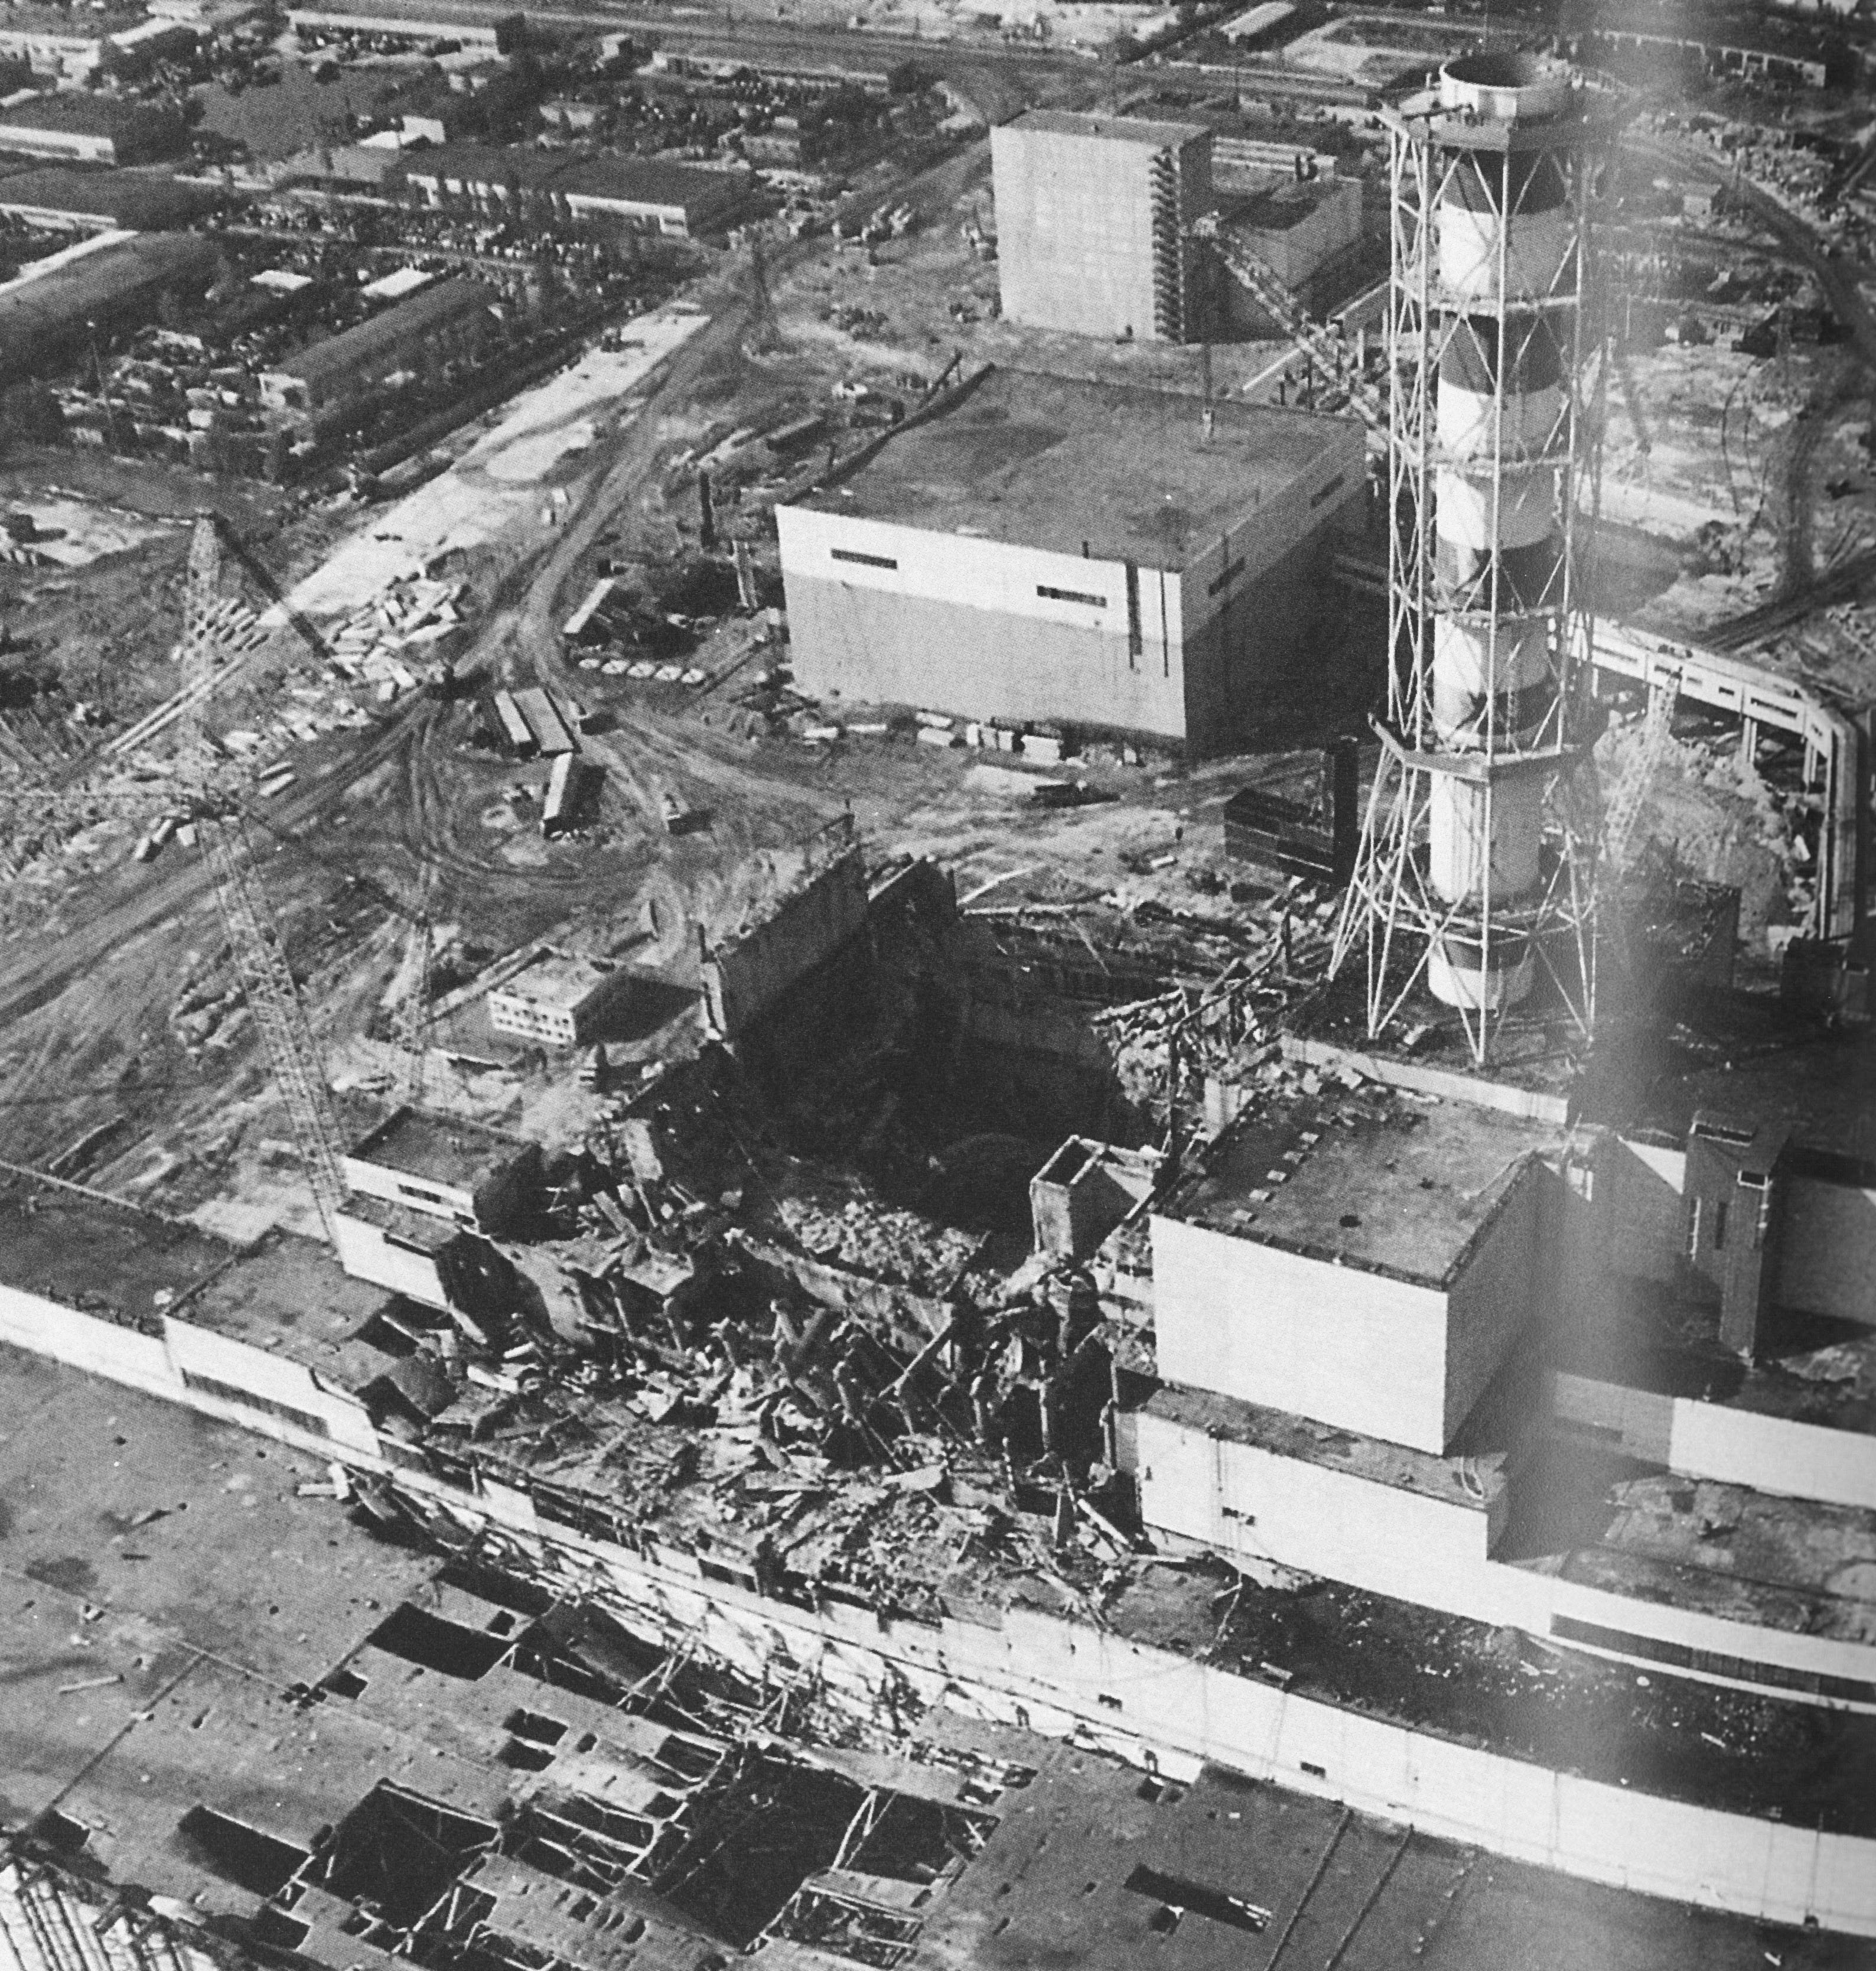 chernobyl nuclear power plant disaster